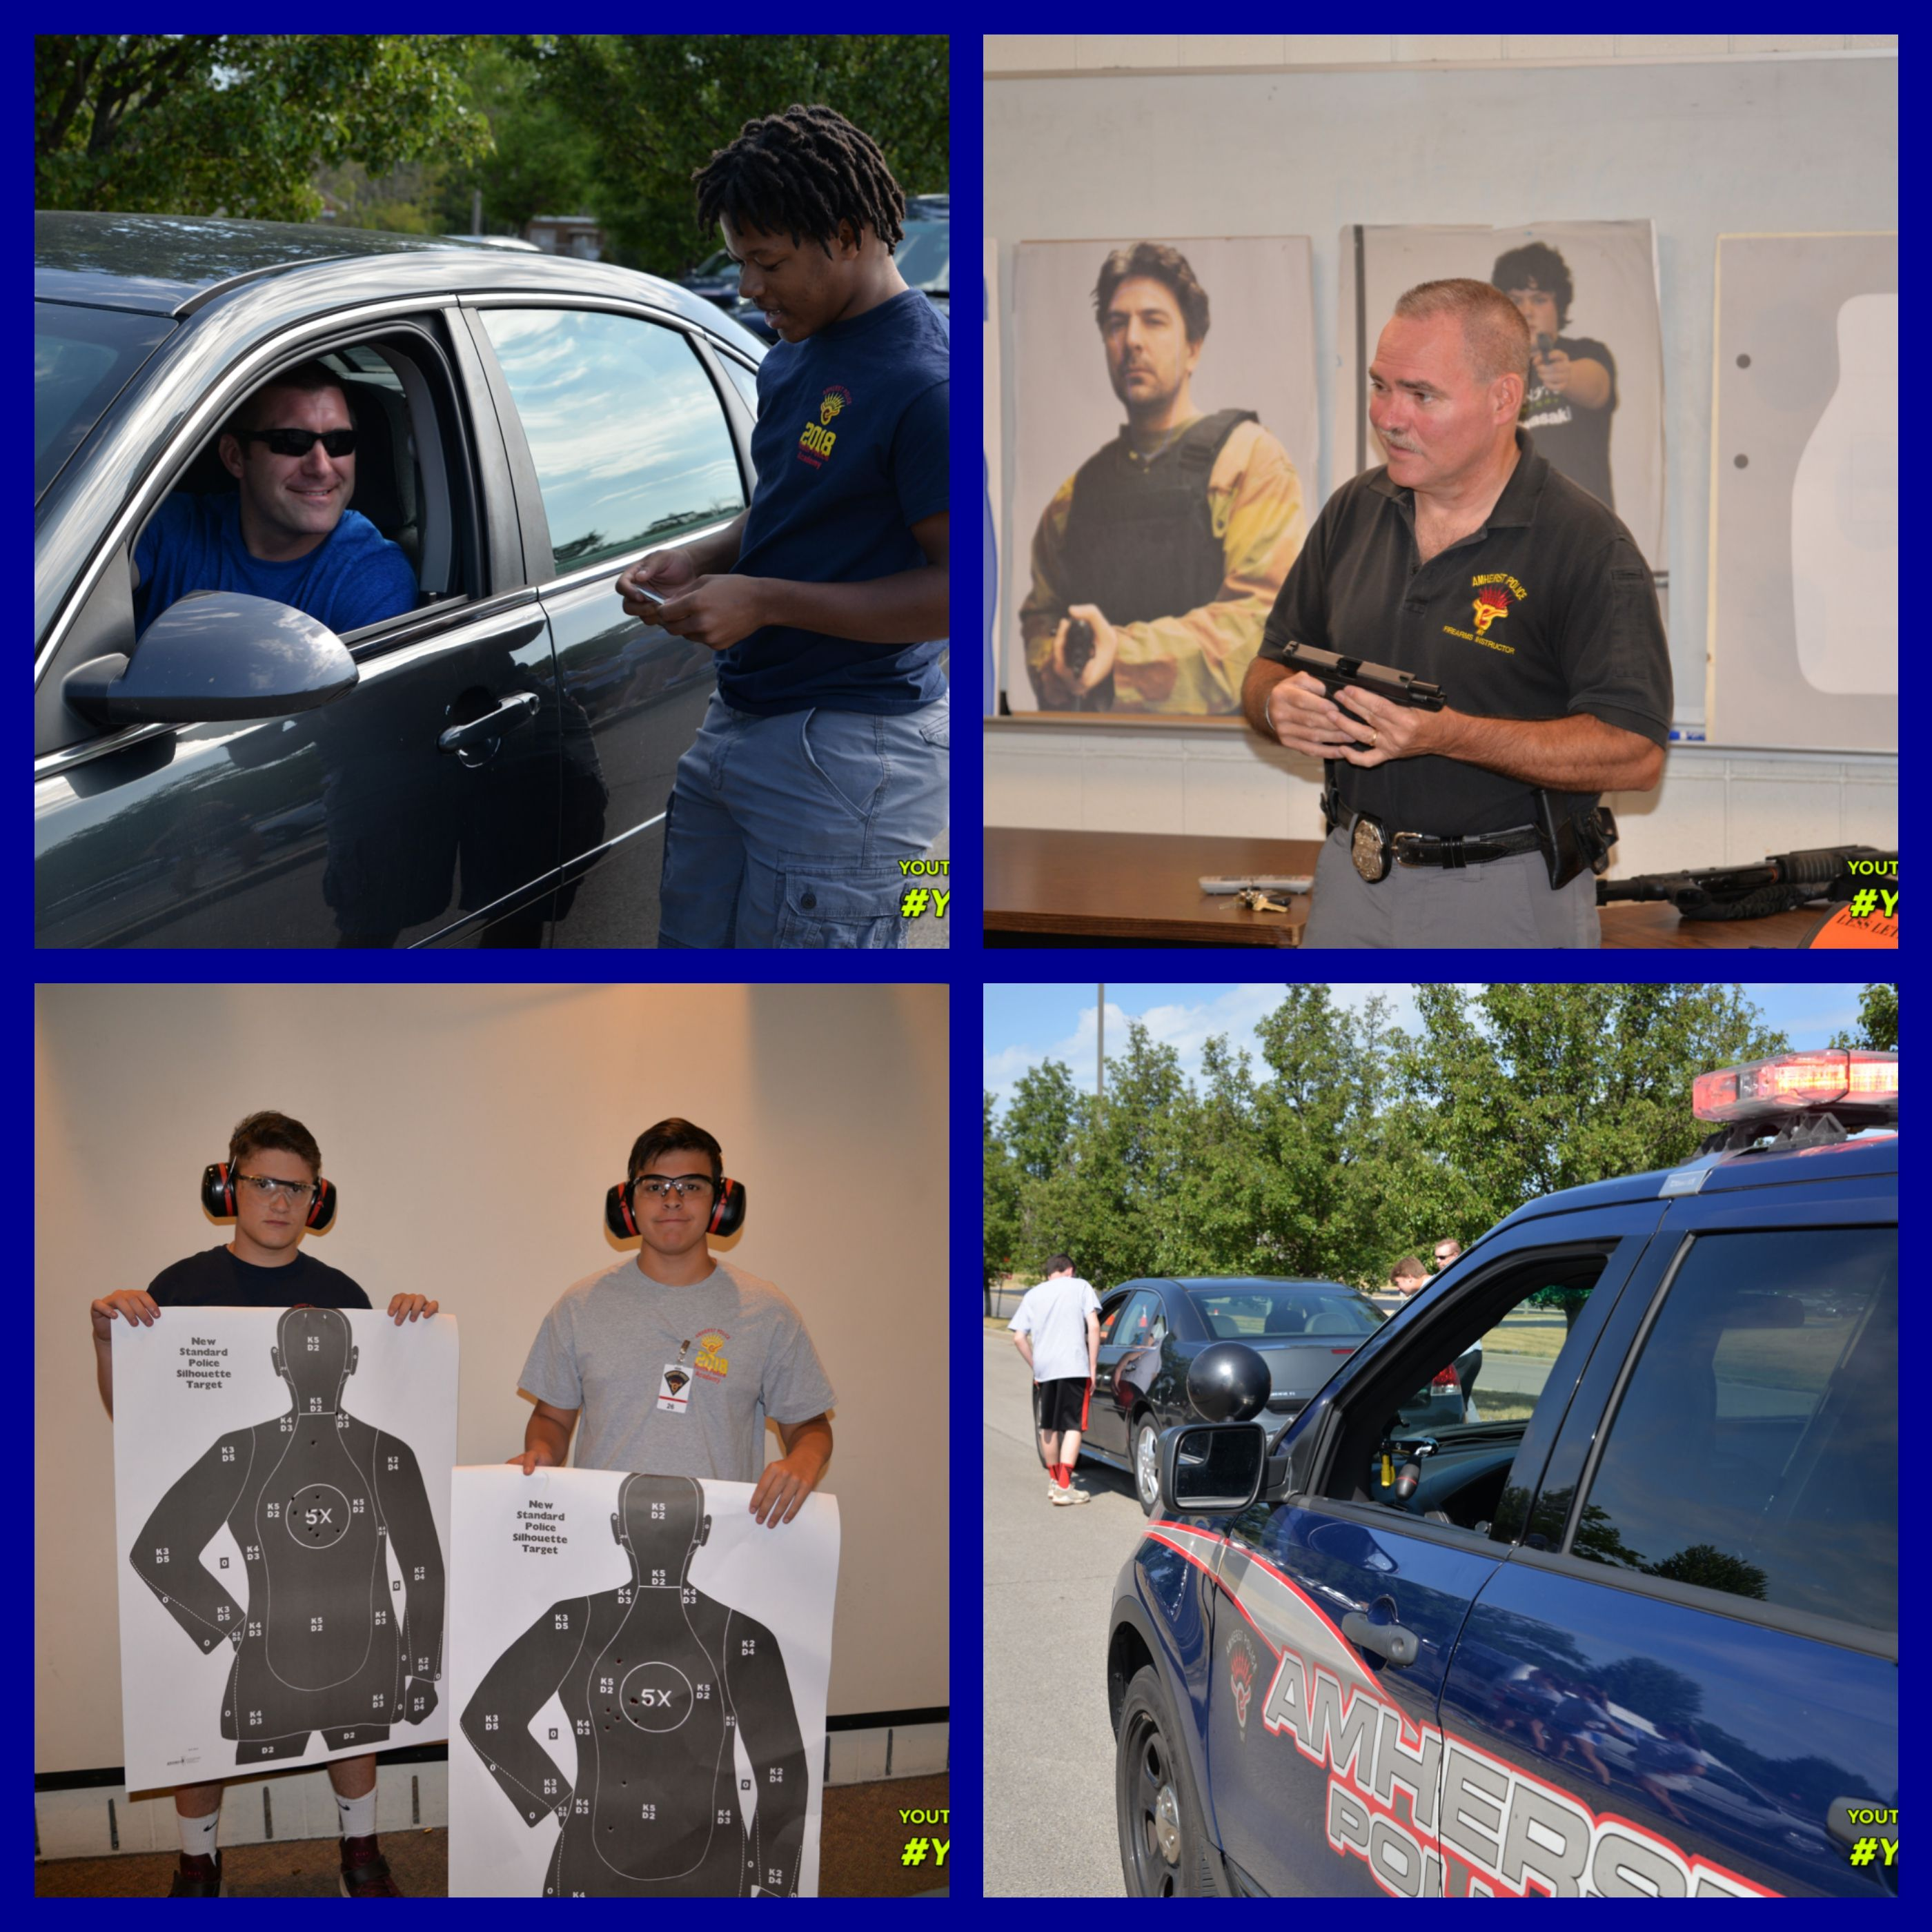 AMHERST, NY] -- WEEK 2 - Summer 2018 Amherst Police Department Youth